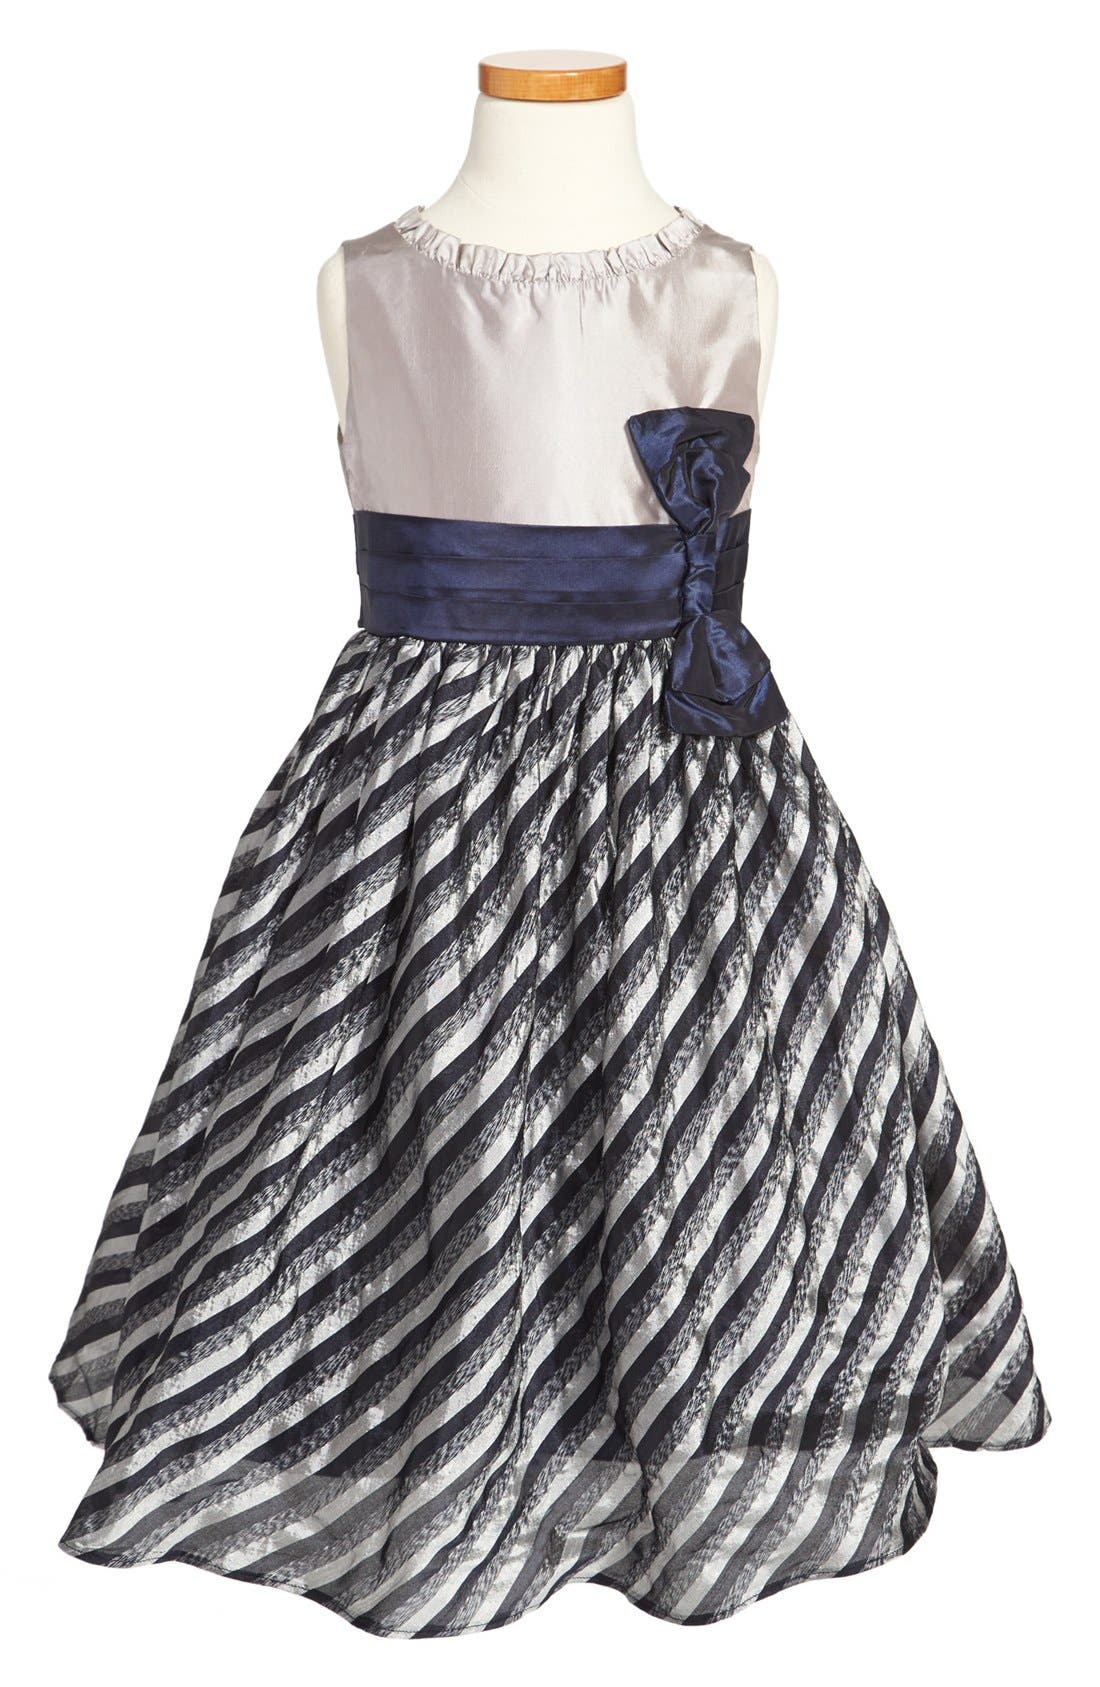 Alternate Image 1 Selected - Dorissa Sleeveless Party Dress (Little Girls)